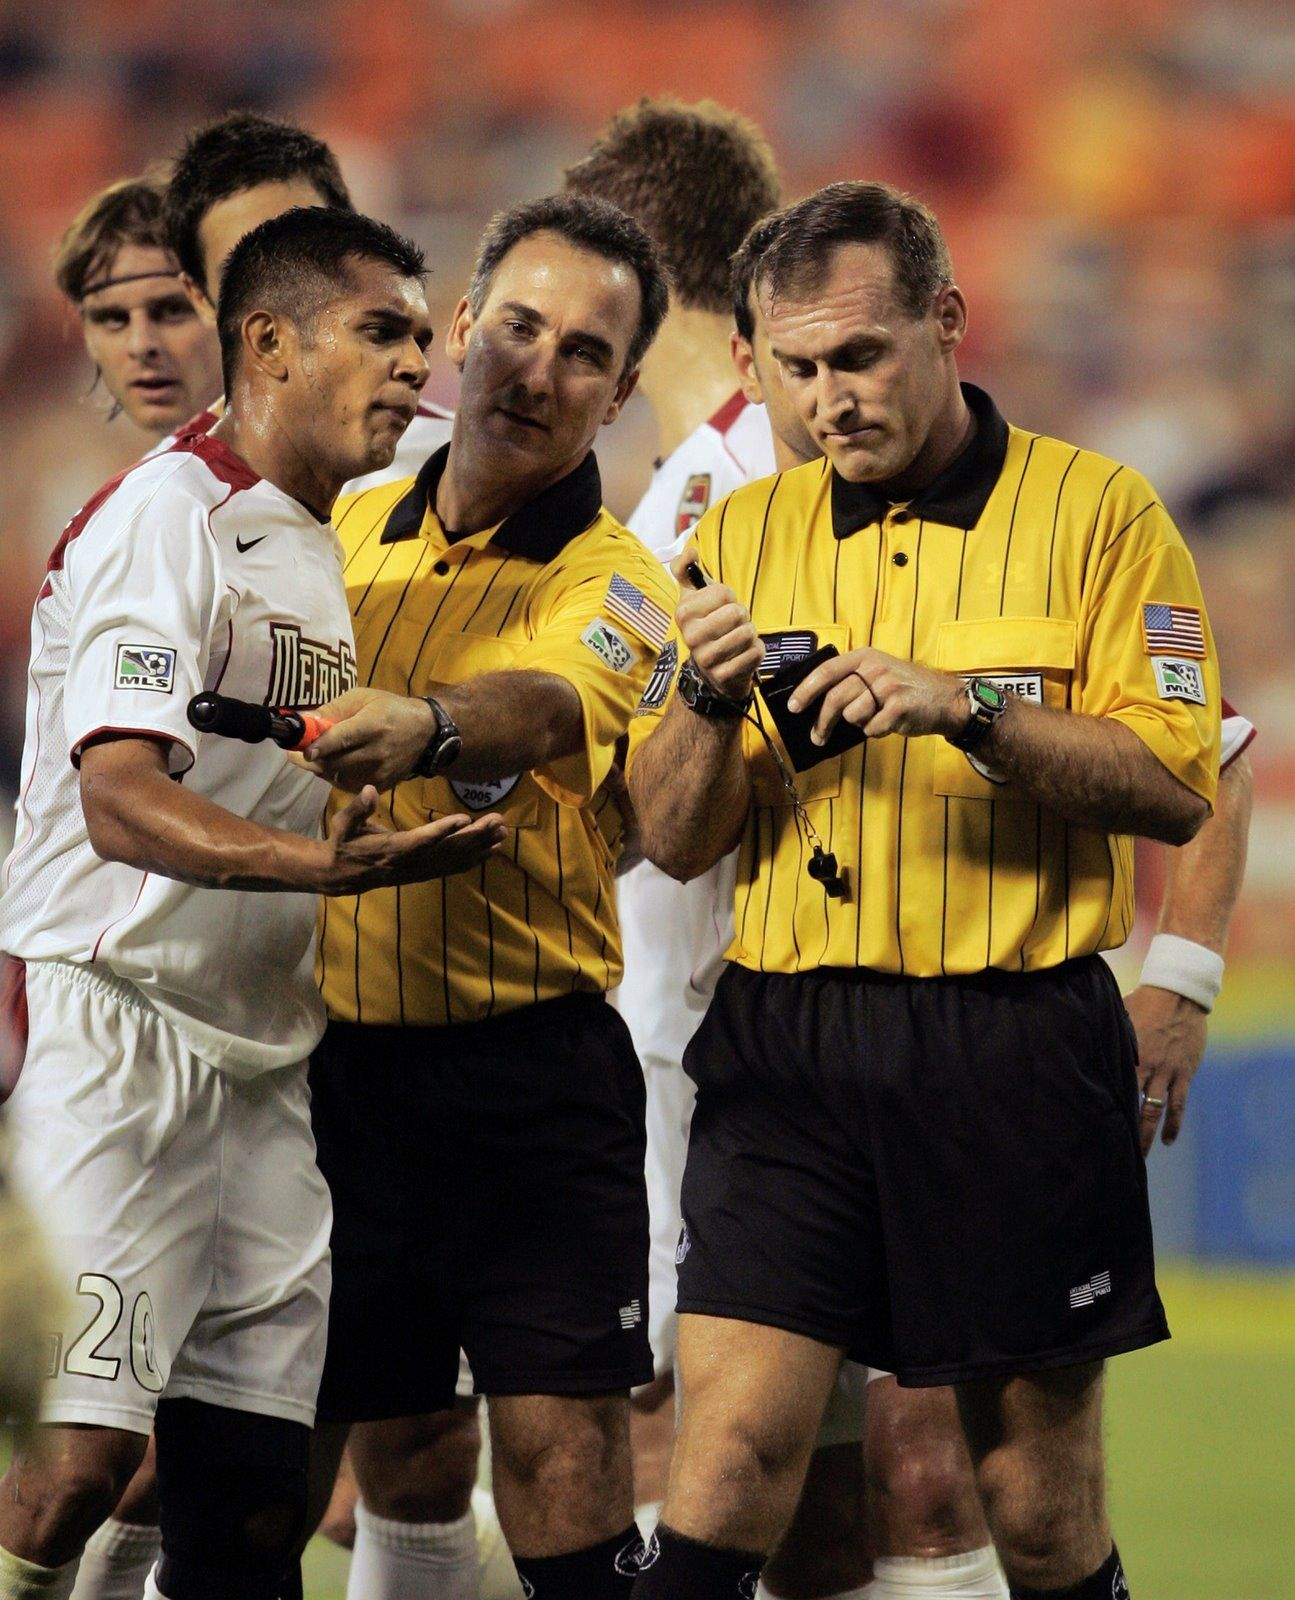 My first job was as a soccer referee and it was really